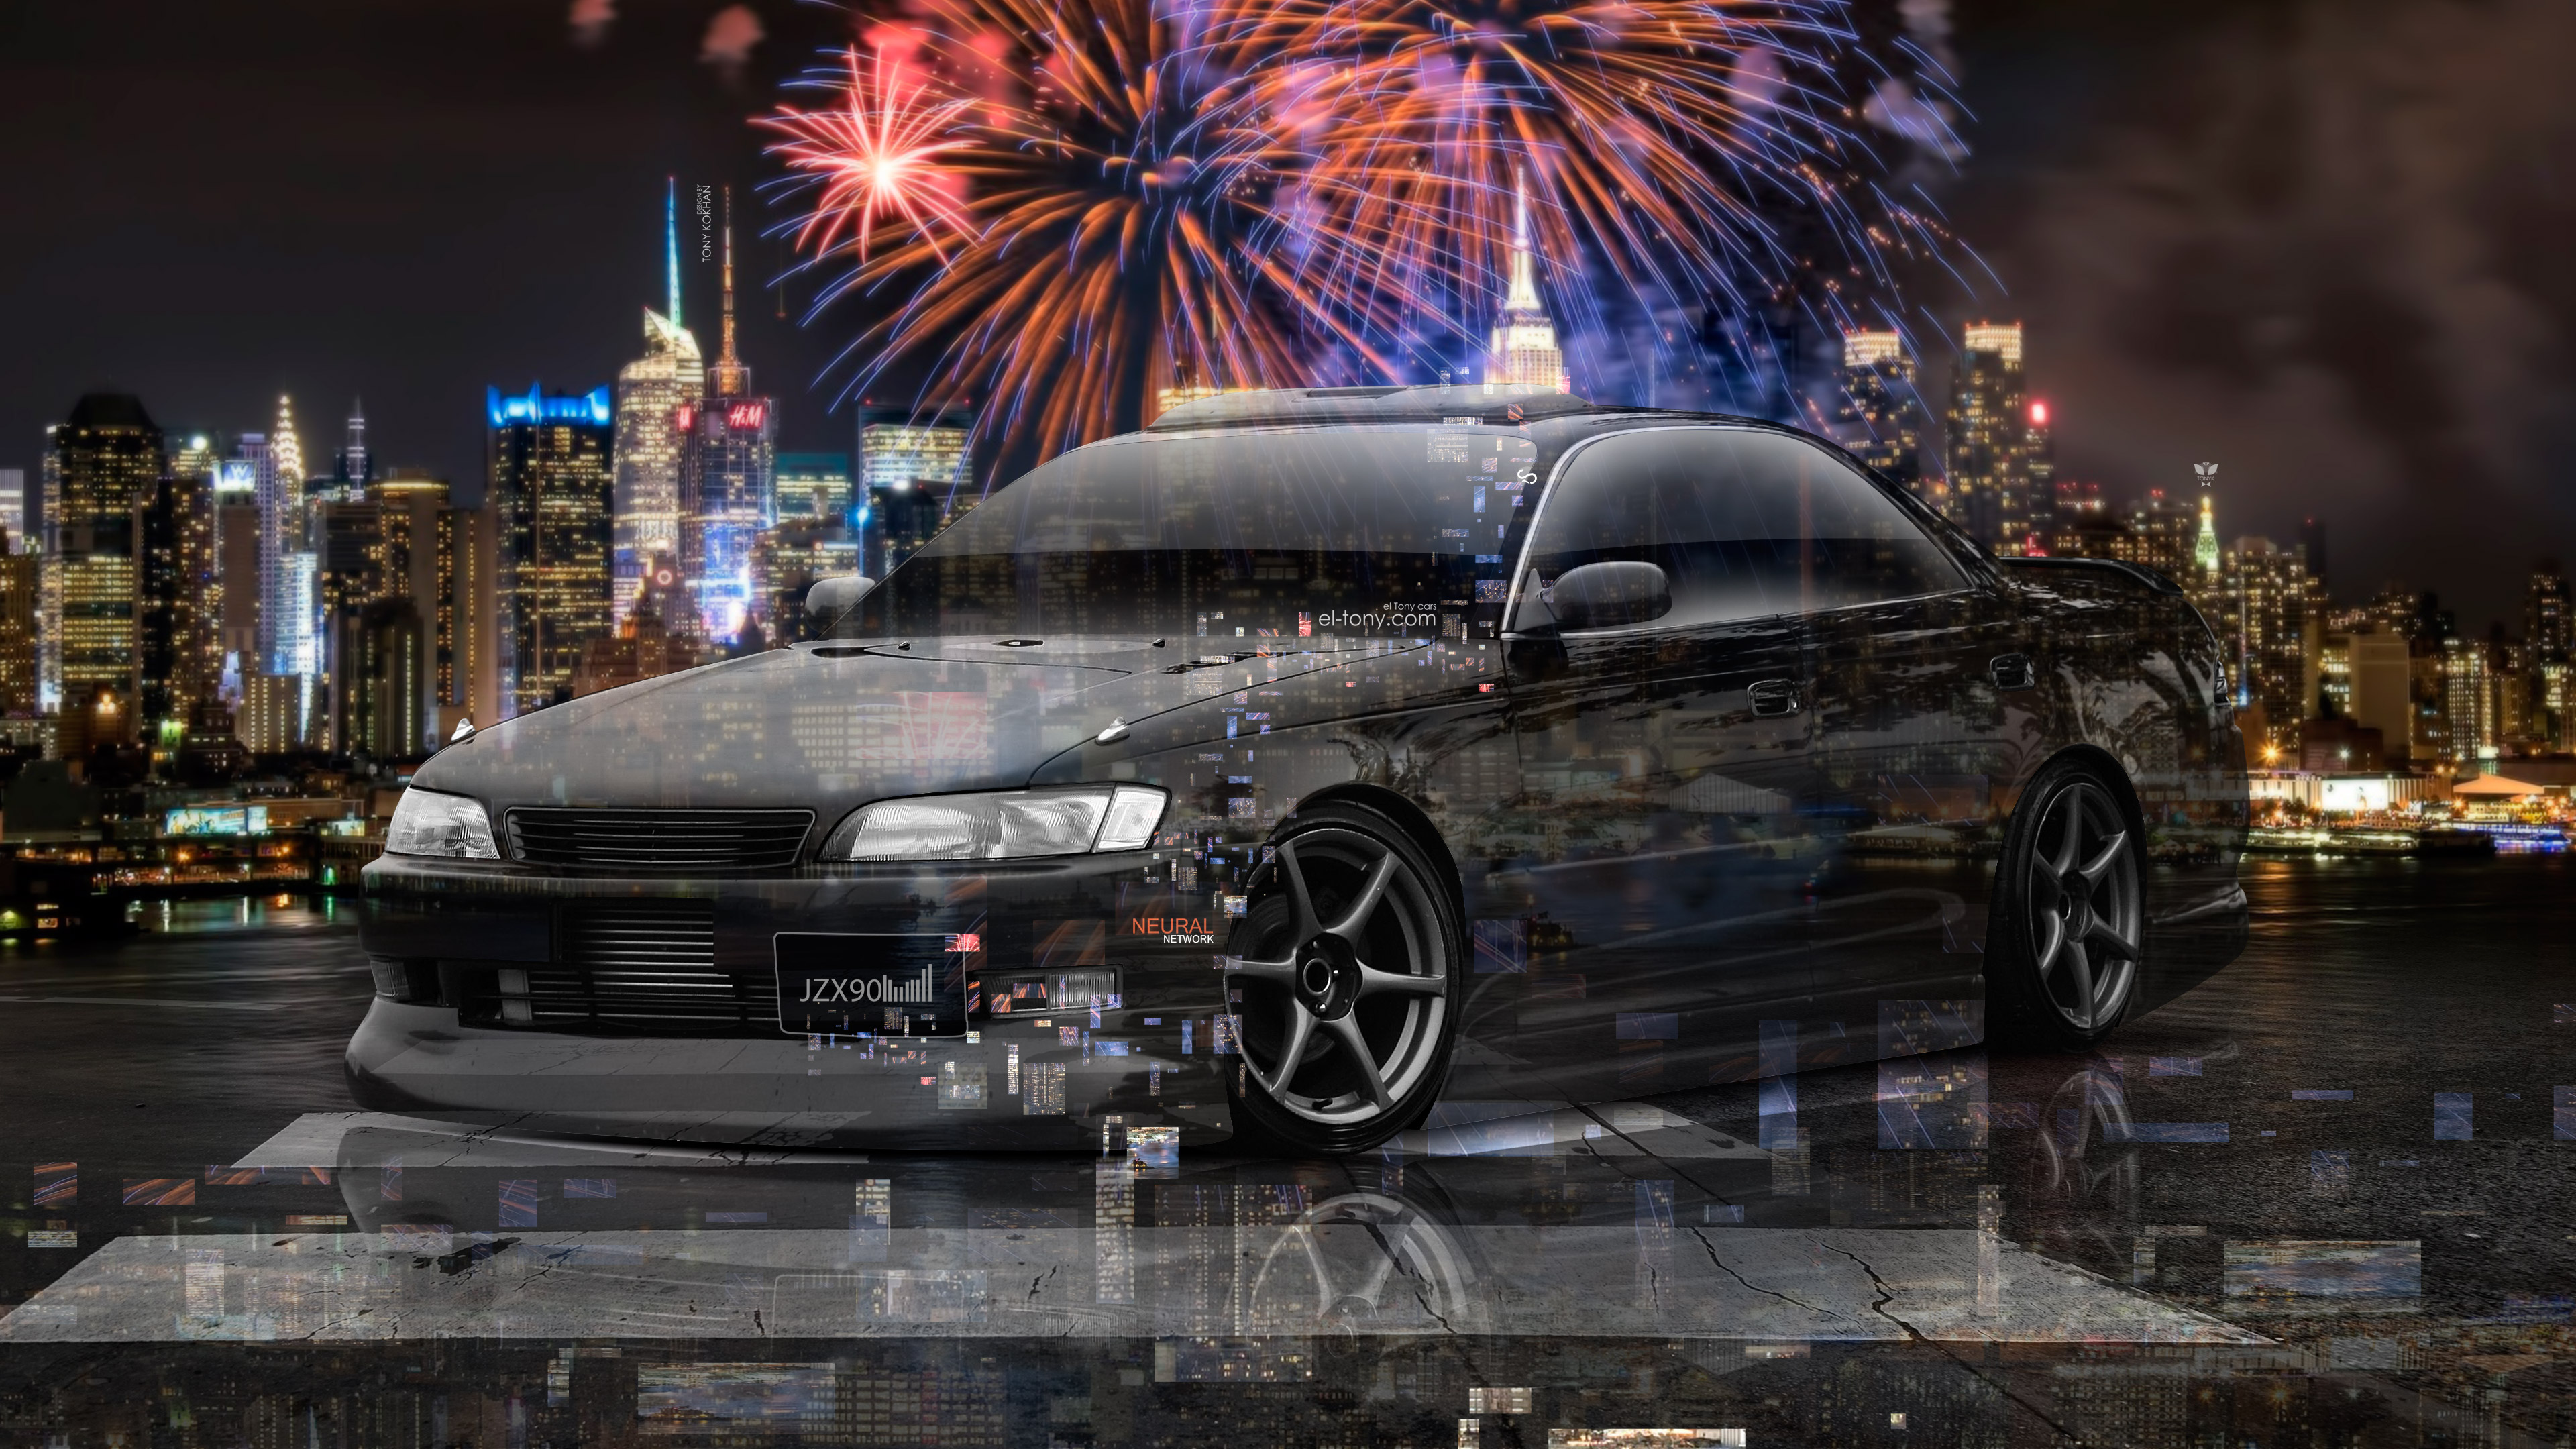 Toyota-Mark2-JZX90-JDM-Tuning-3D-Super-Neural-Network-Crystal-City-Night-Firework-Art-Car-2018-Multicolors-4K-Wallpapers-design-by-Tony-Kokhan-www.el-tony.com-image